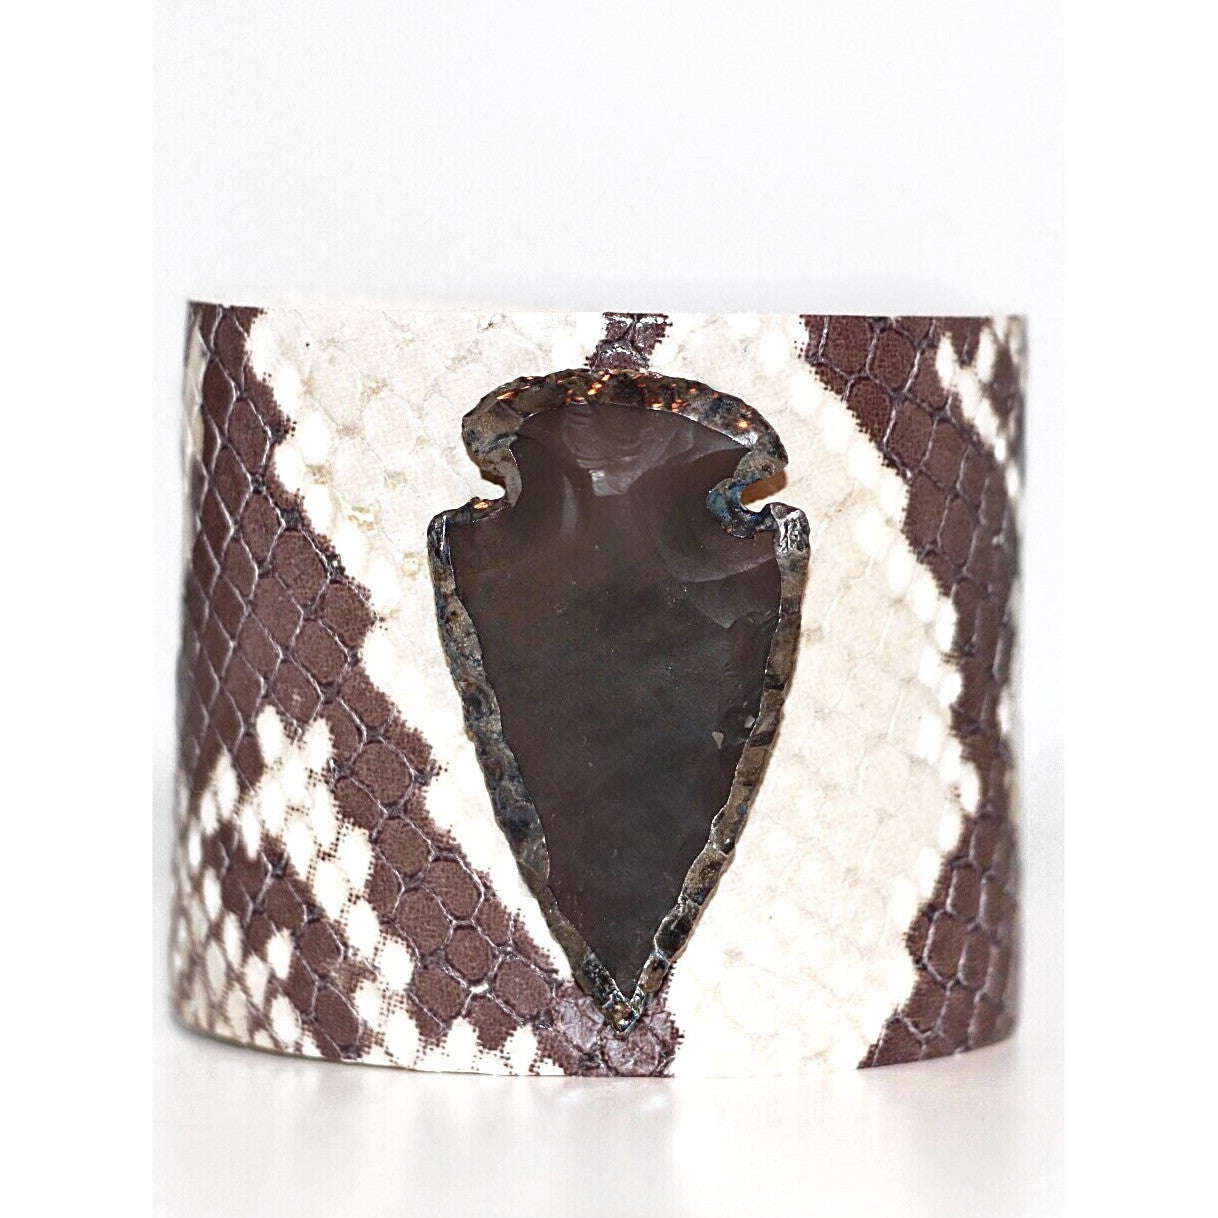 Molly Jane Designs Cowhide Arrowhead Cuff Bracelet